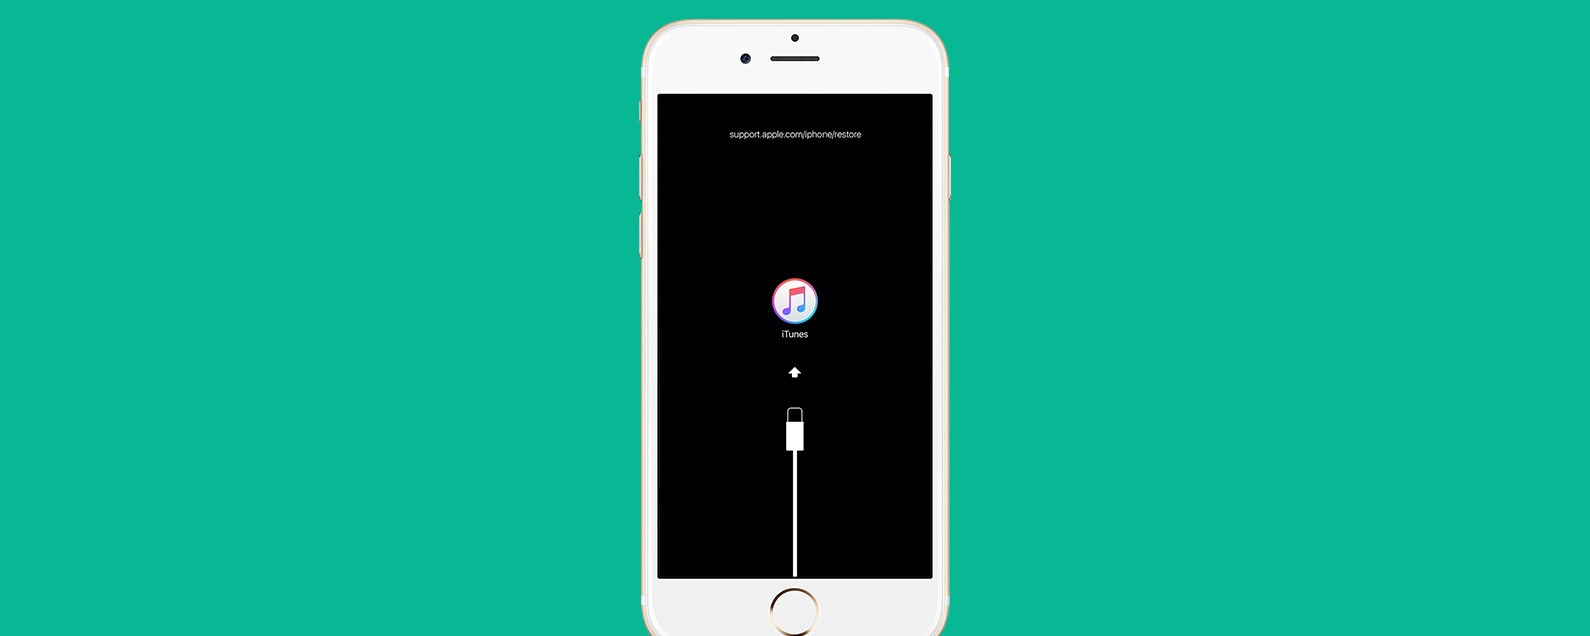 How to turn off iPhone, if button does not work Three ways